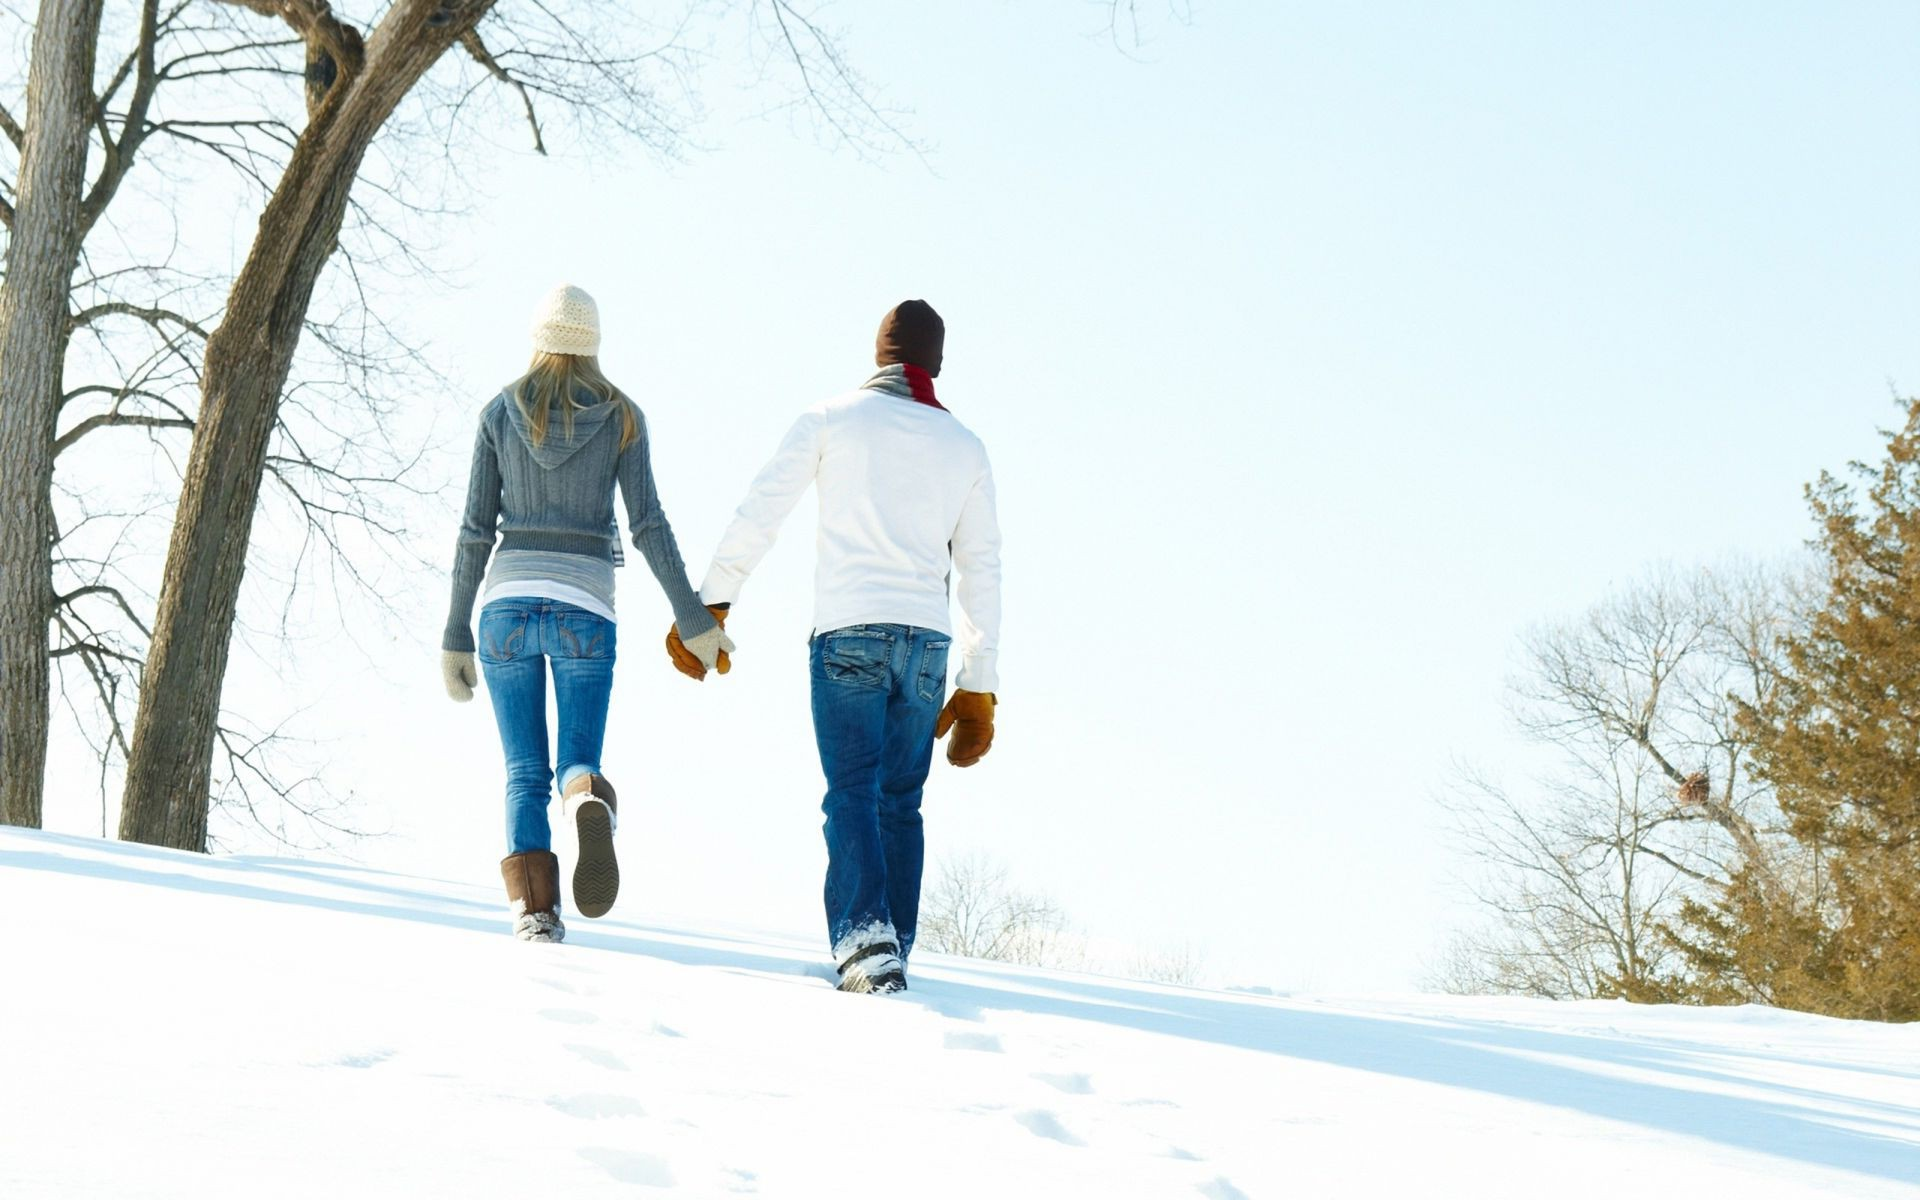 couples winter snow cold outdoors wood tree landscape daylight weather man ice togetherness nature frost frozen